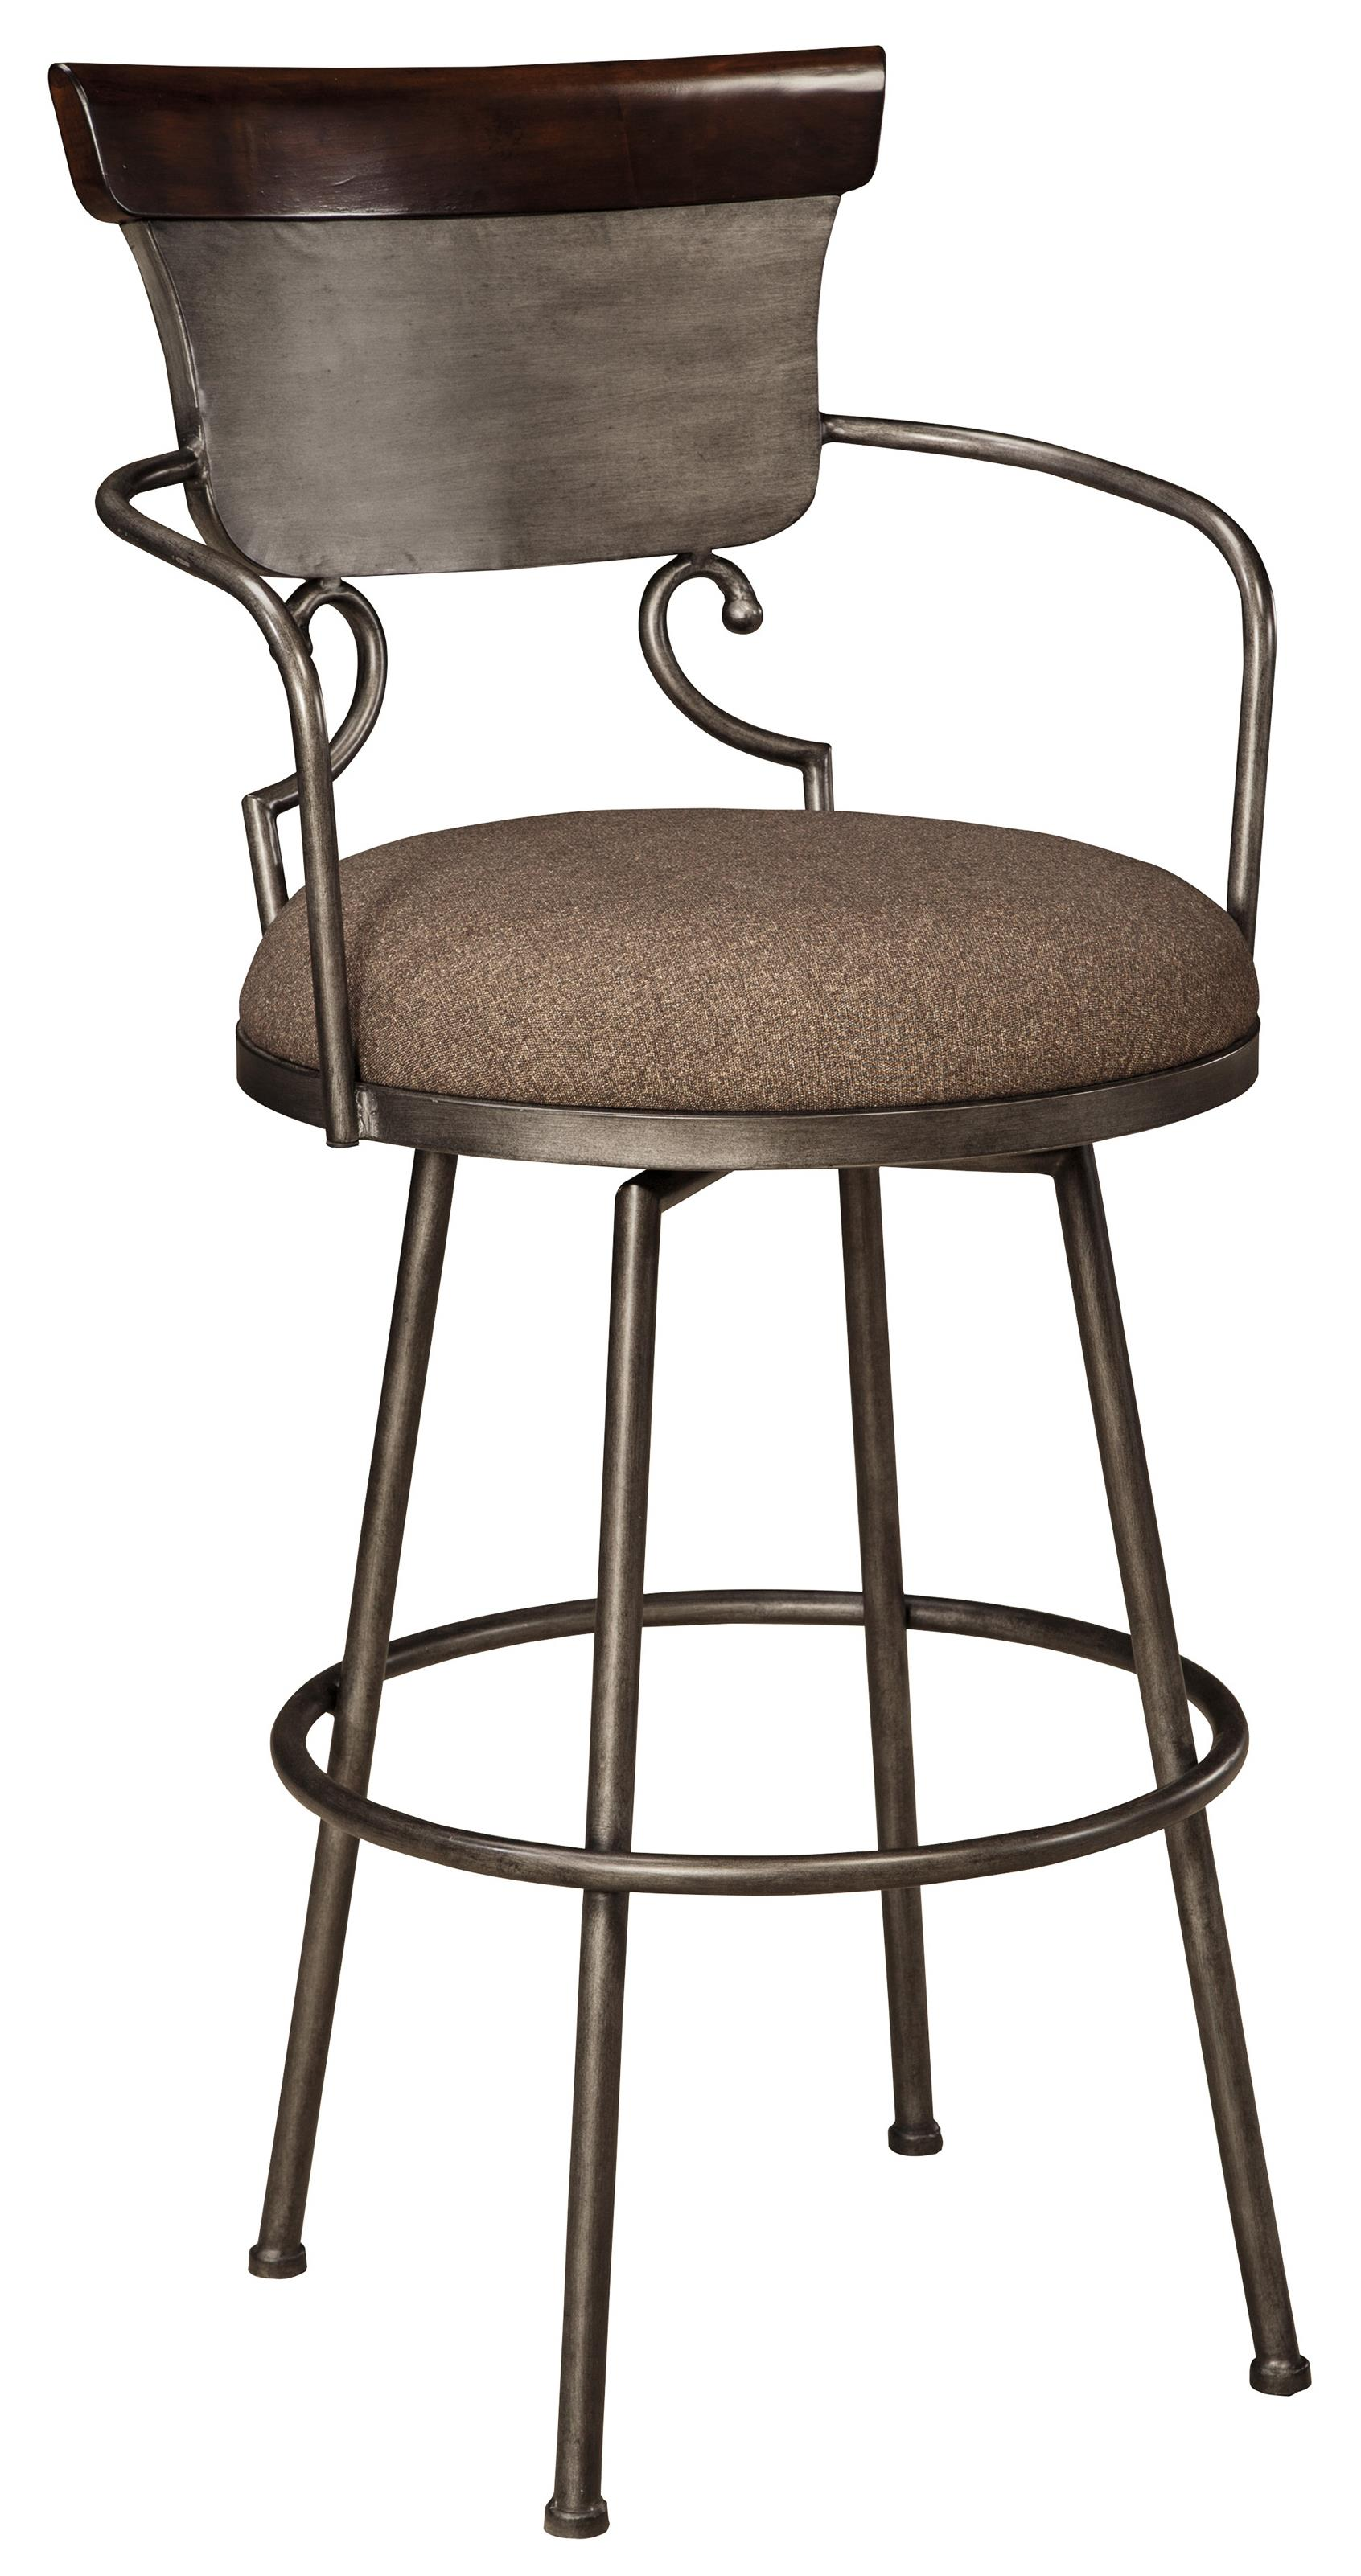 Signature Design by Ashley Moriann Tall Upholstered Barstool - Item Number: D608-630